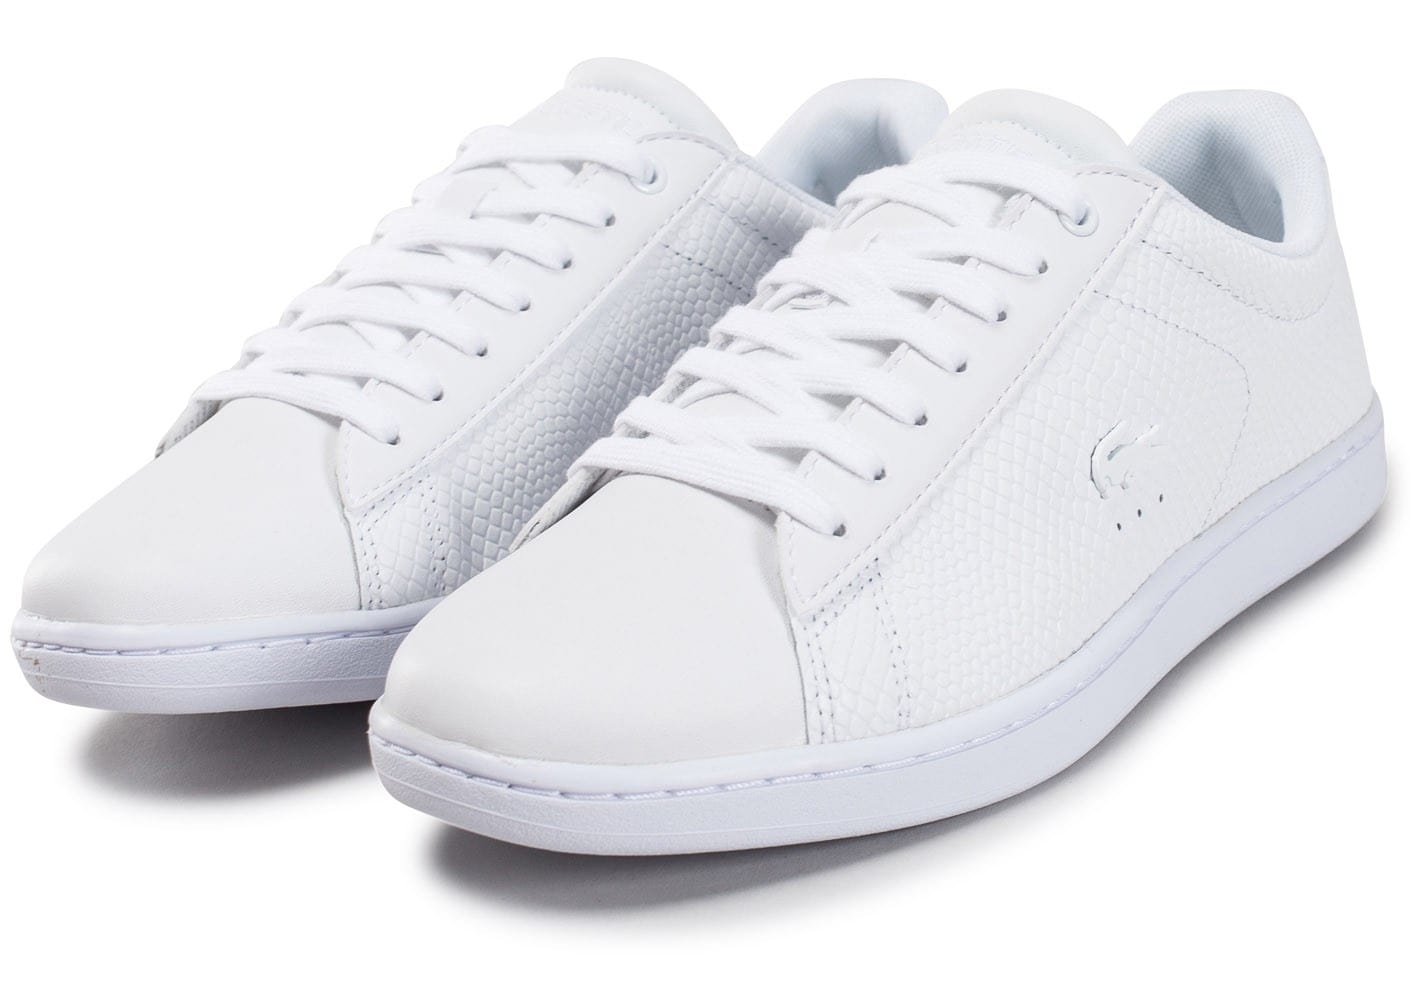 Lacoste carnaby evo texture blanche chaussures black - Lacoste carnaby evo cls baskets en cuir perfore ...